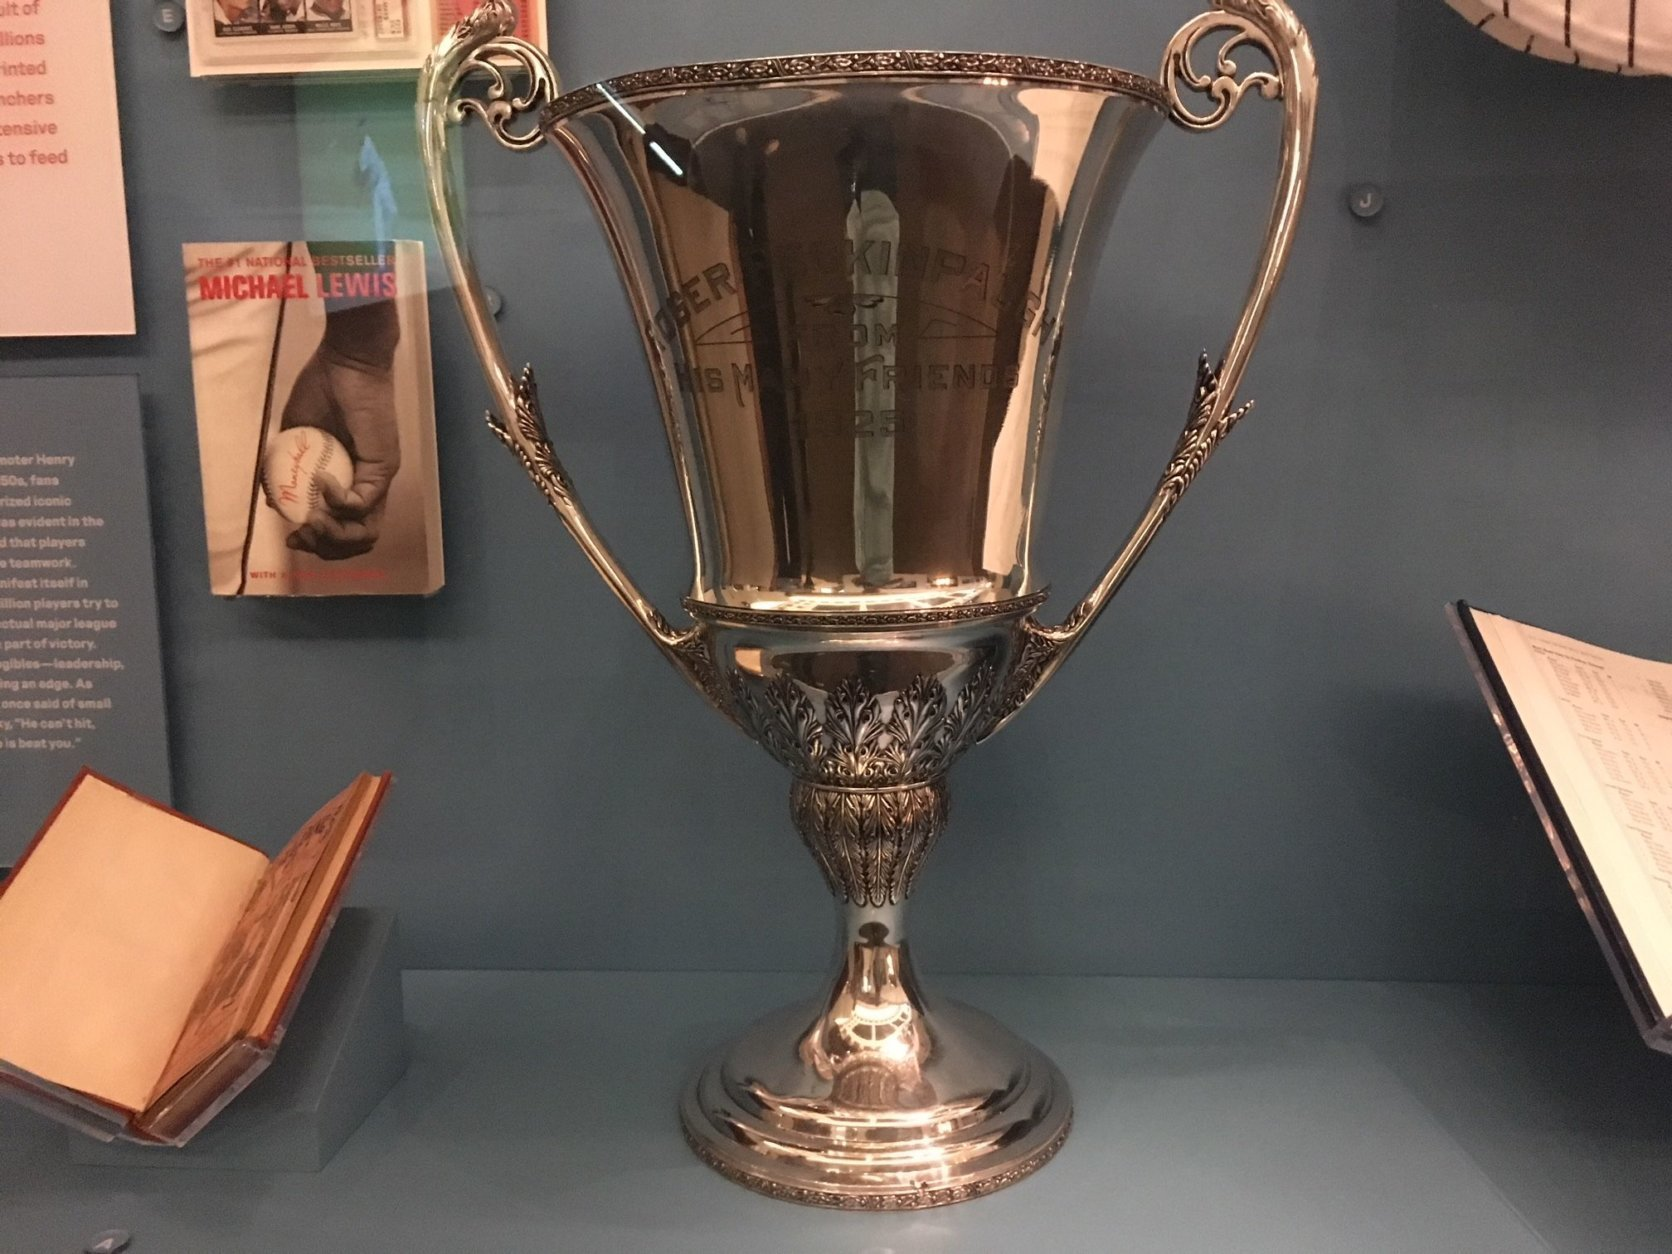 There are some unique items on display, including this trophy paid for by Senators fans and given to Roger Peckinpaugh after he won the American League MVP in 1925, back before the league awarded any physical totem. (WTOP/Noah Frank)